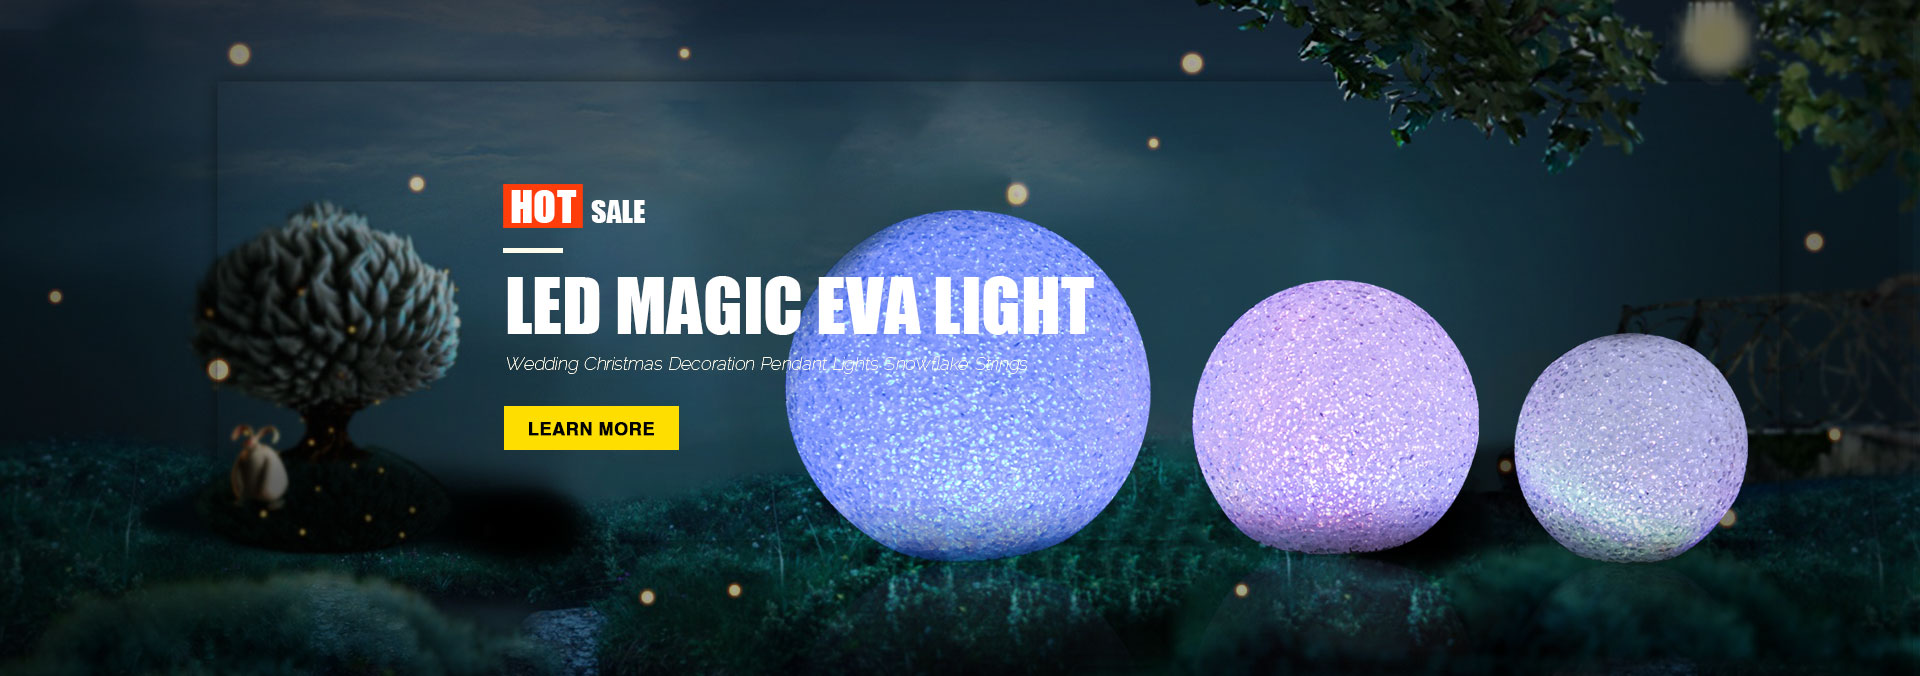 LED Magic Eva Light